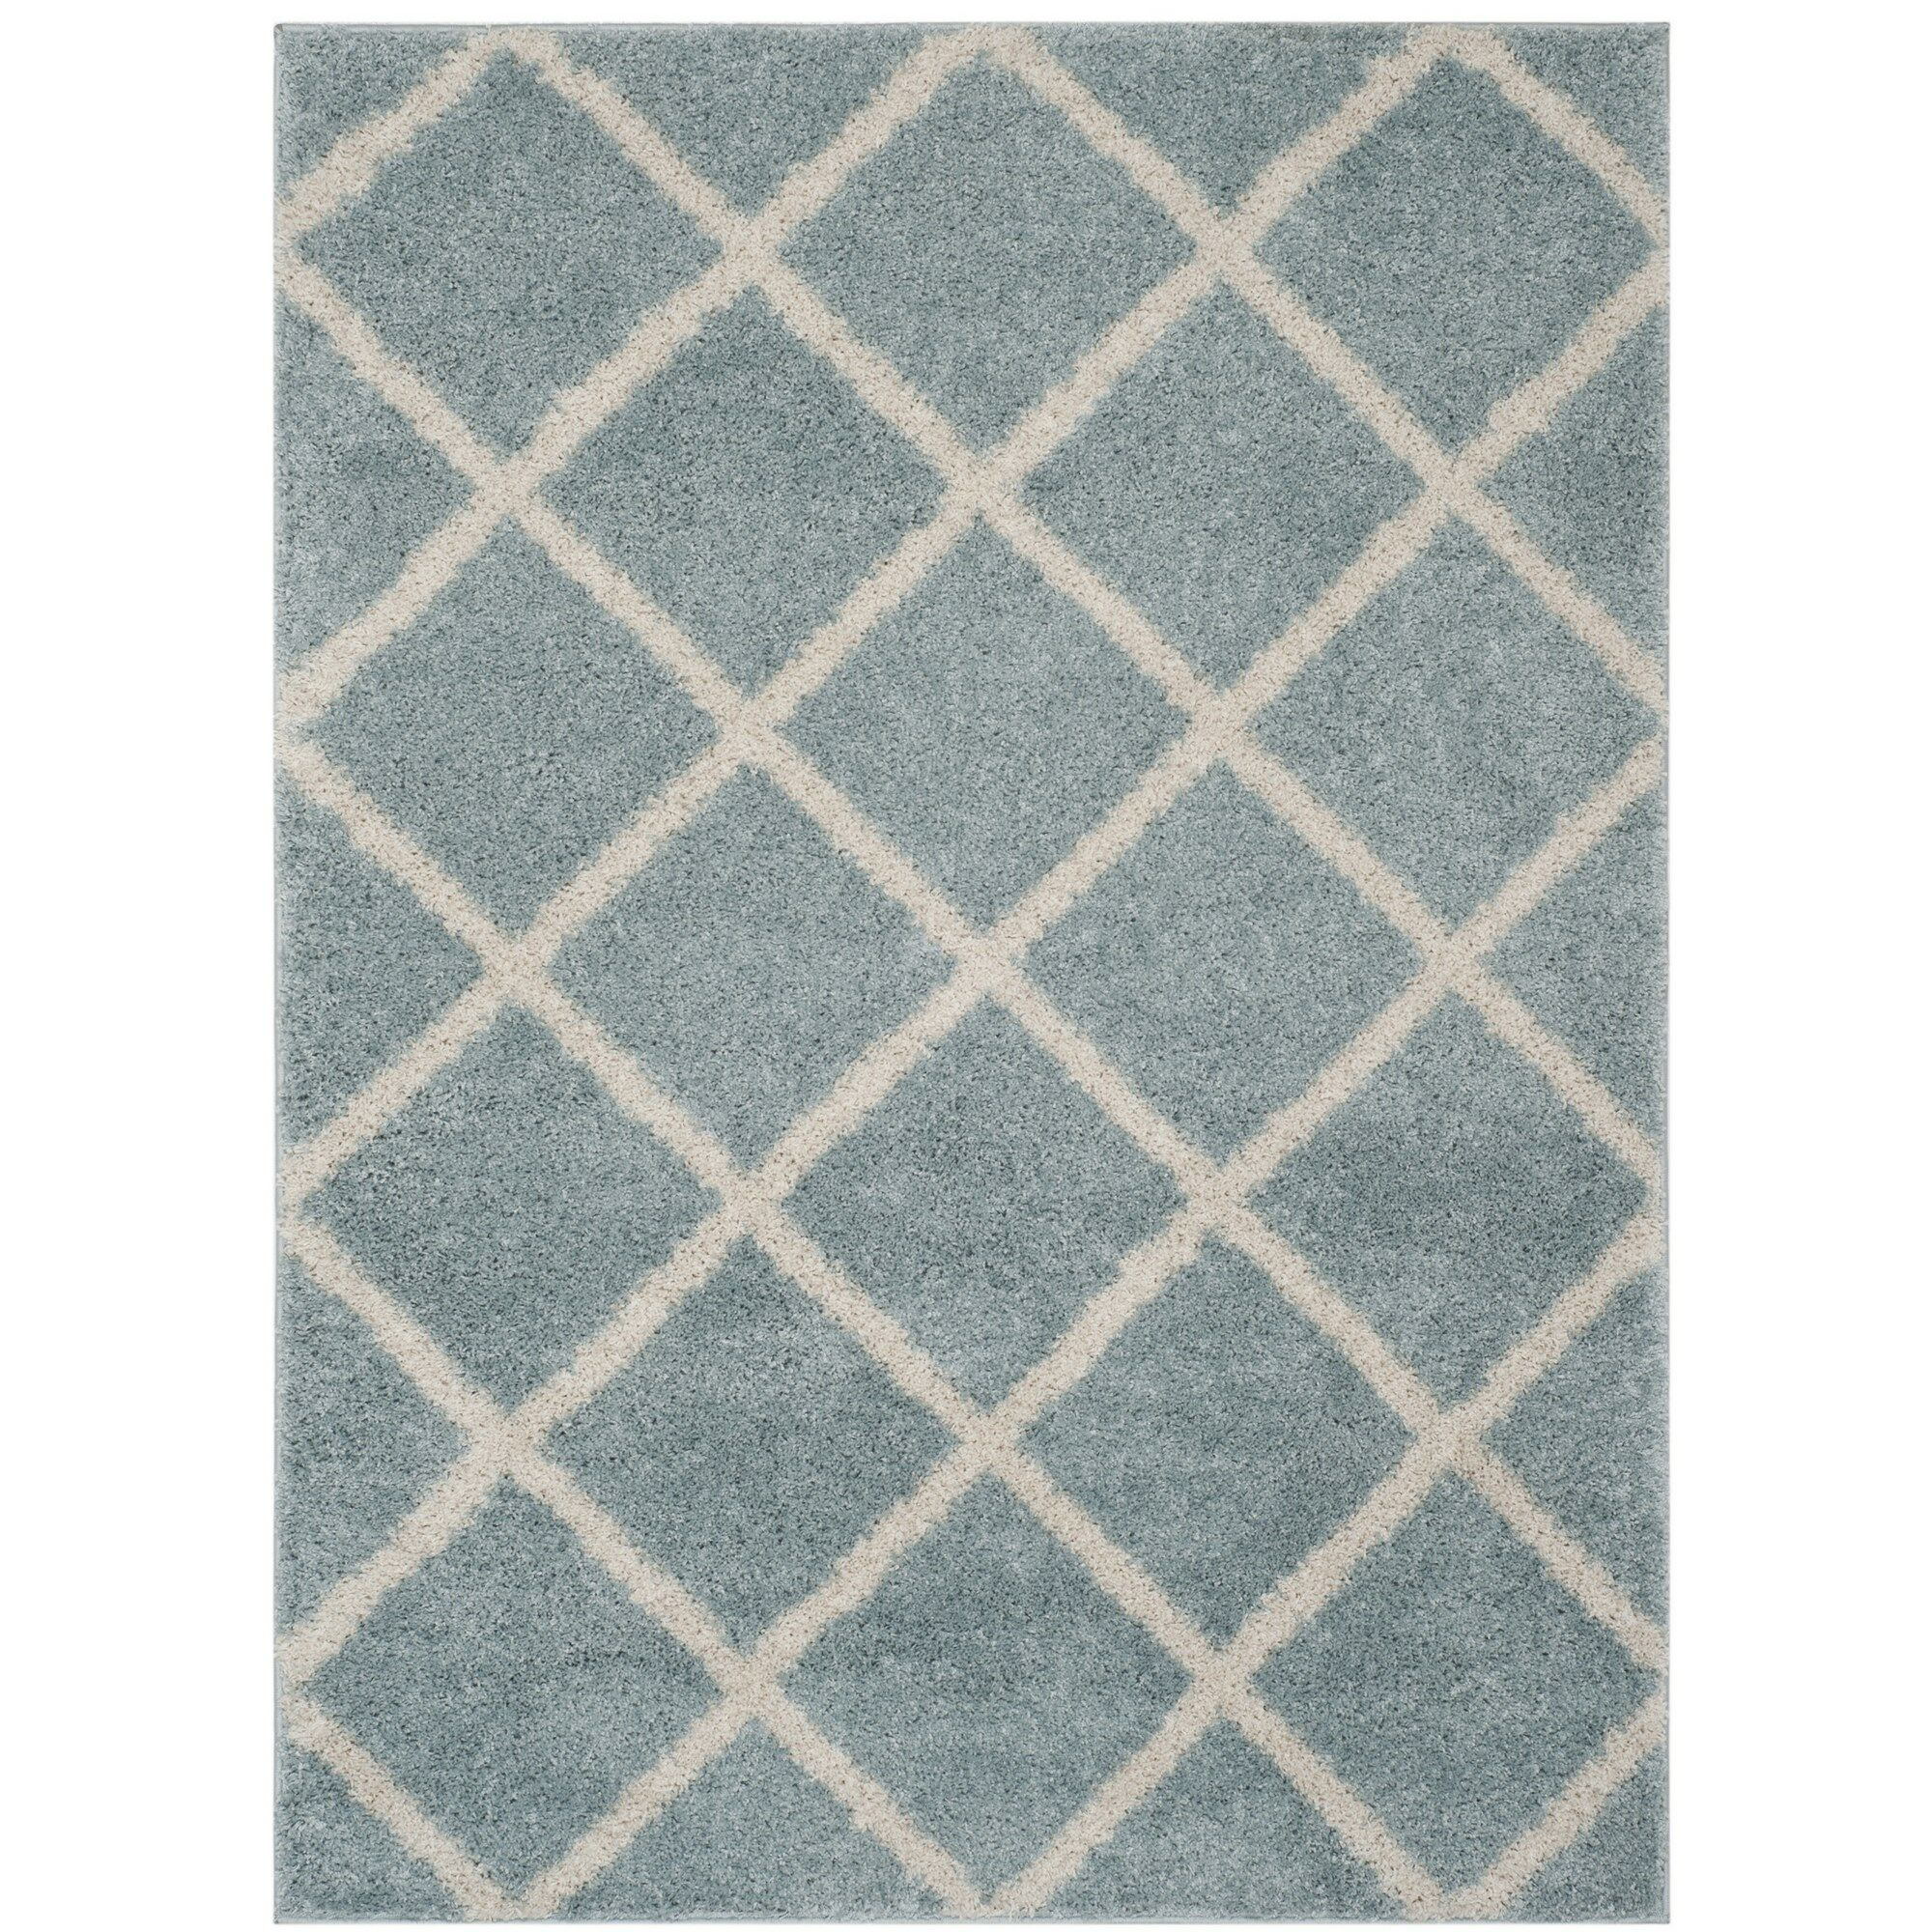 Helsel Blue Area Rug Rug Size: Rectangle 5'1